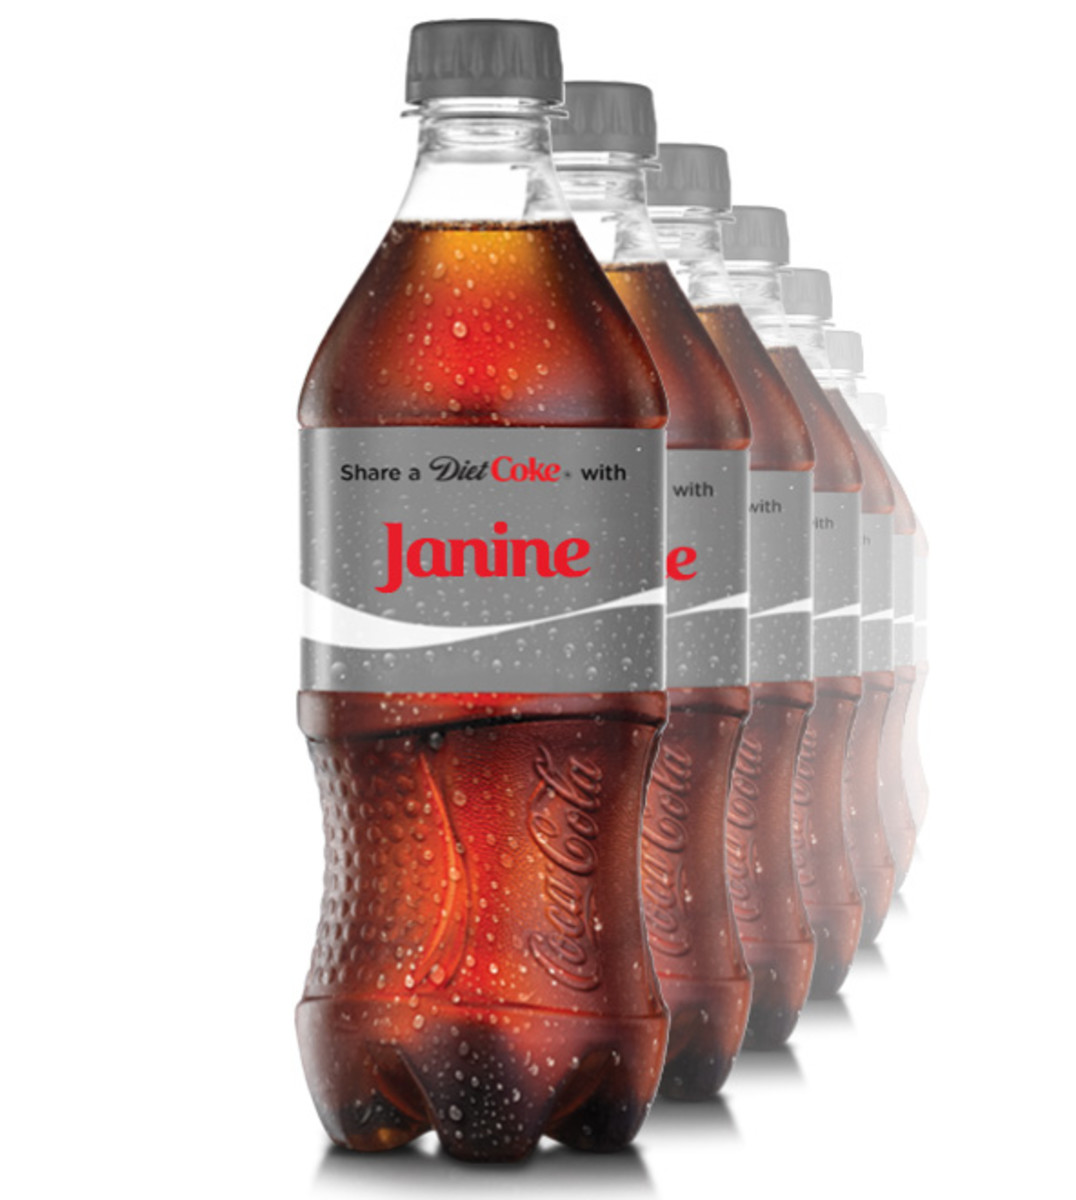 personalized coke labels _share a coke with Janine